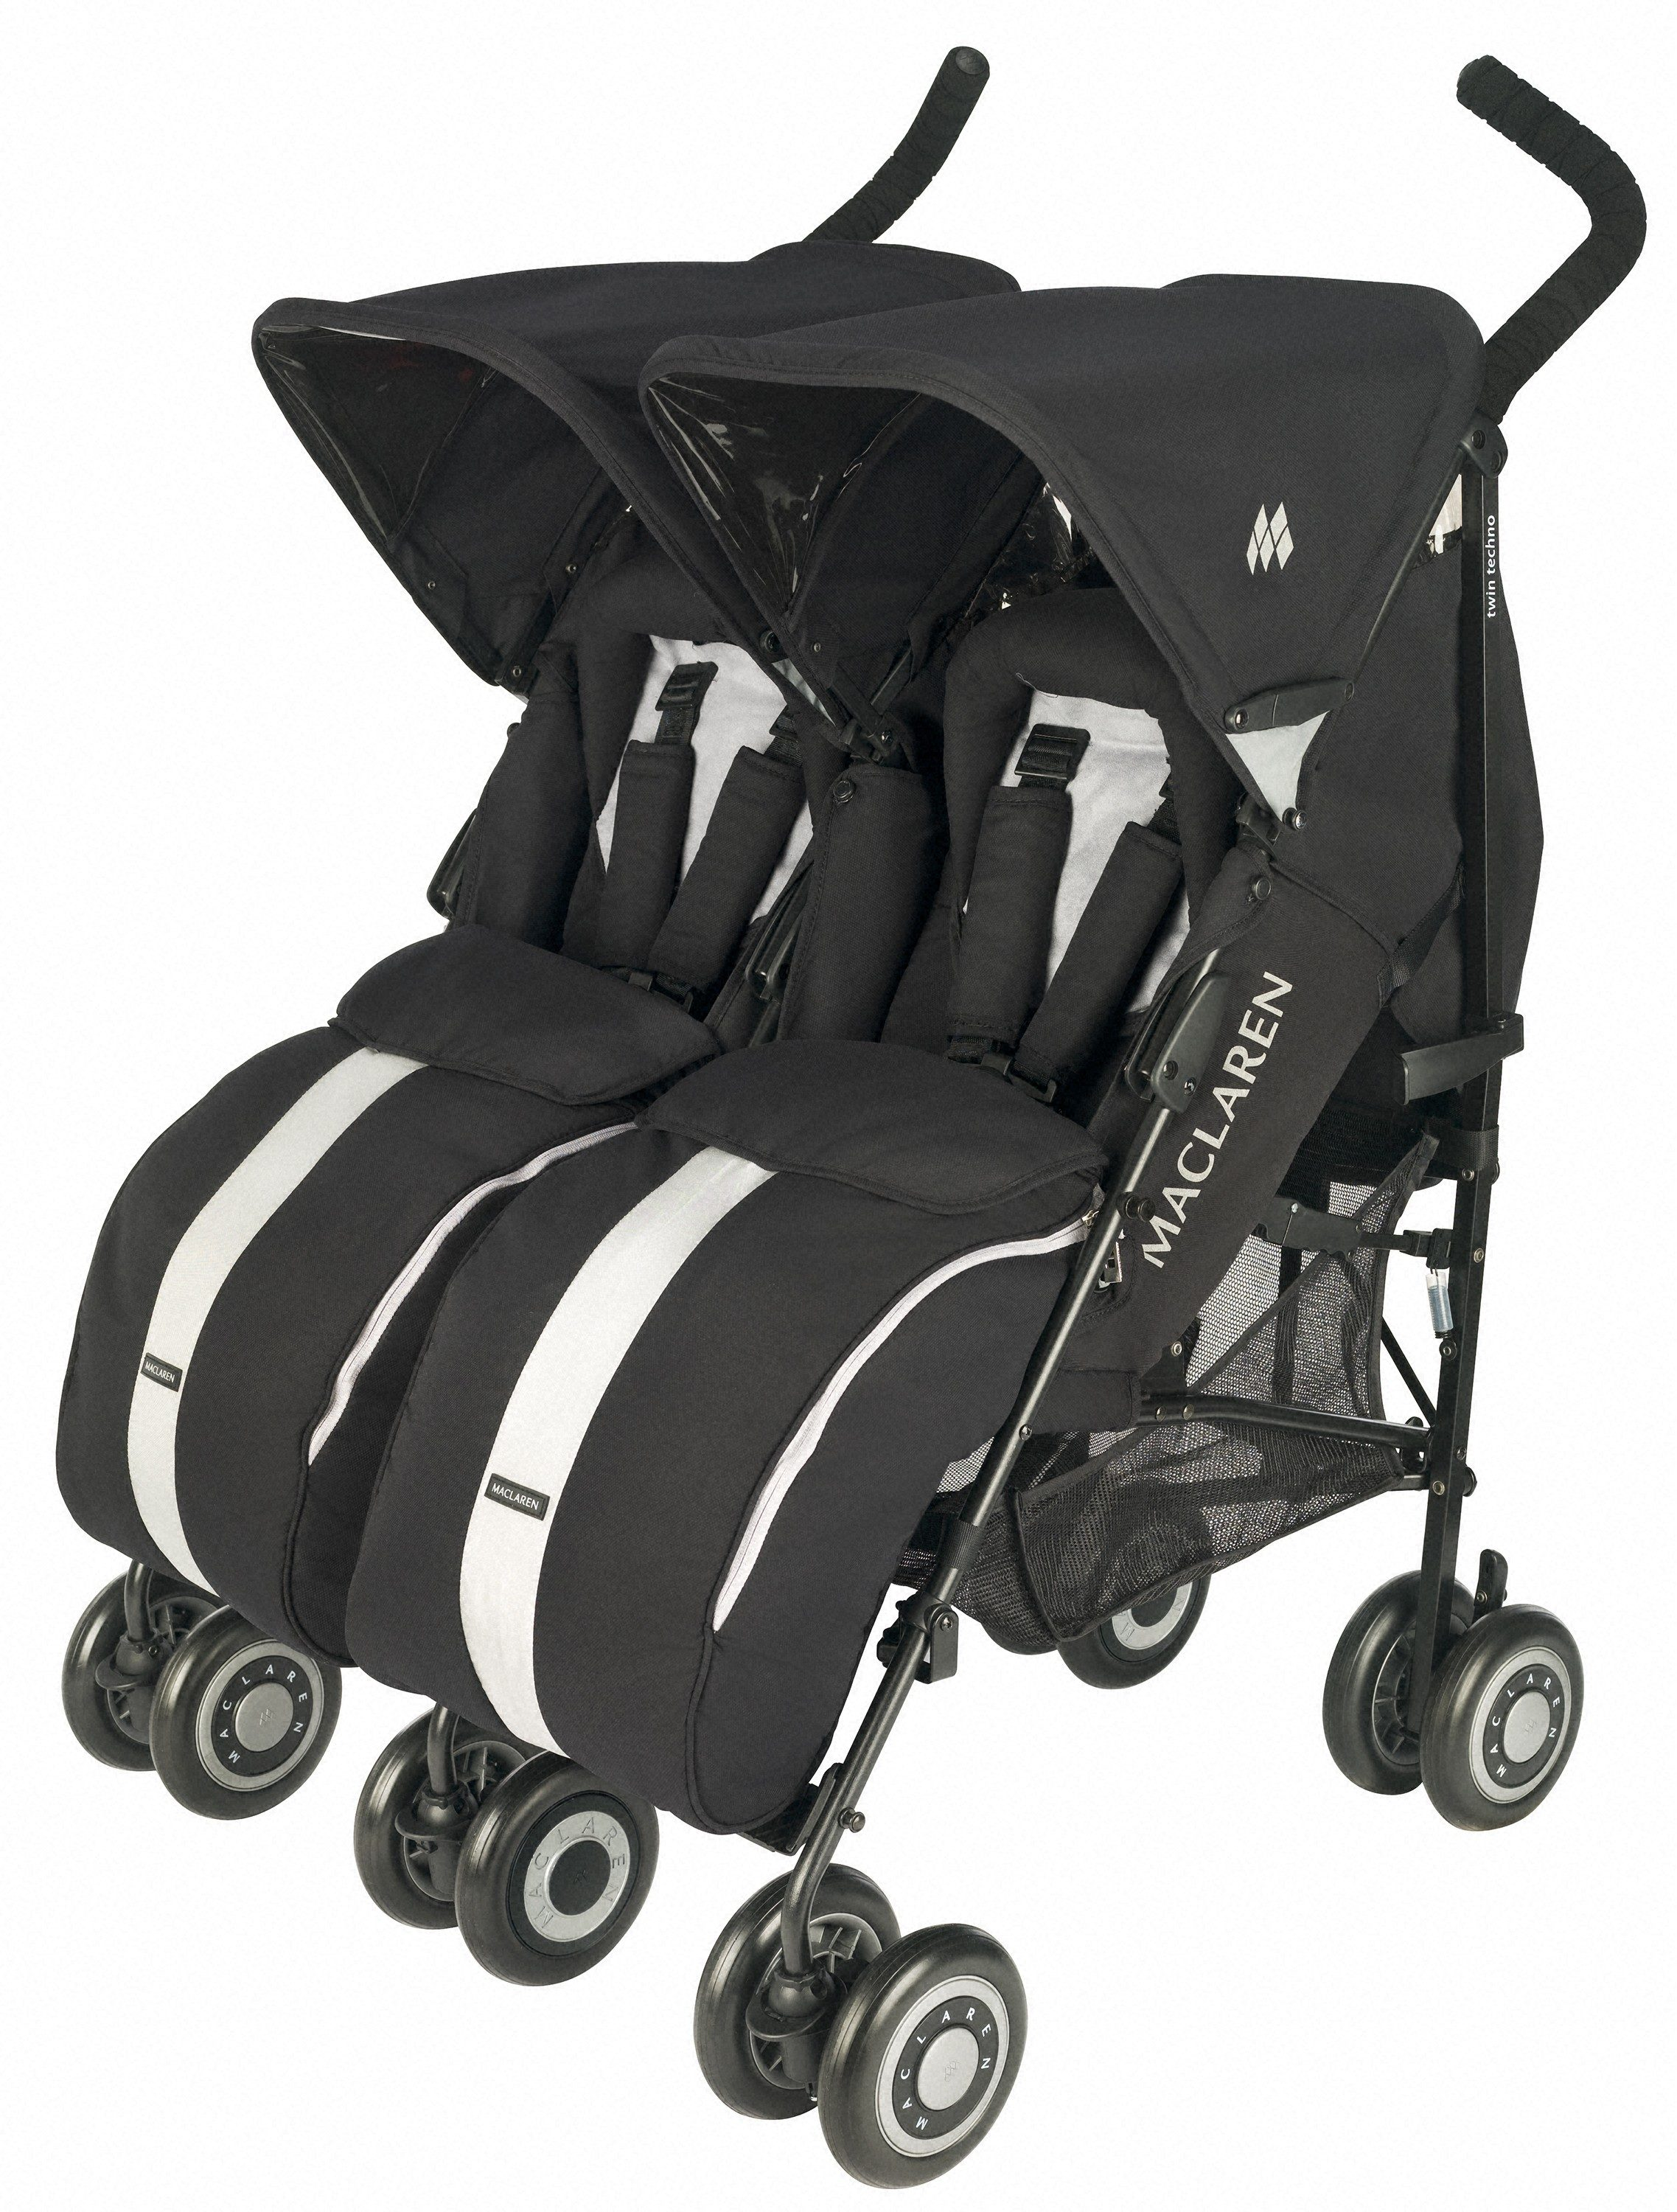 Maclaren Stroller Uk Reviews Maclaren Twin Techno Twins Tandems Pushchairs